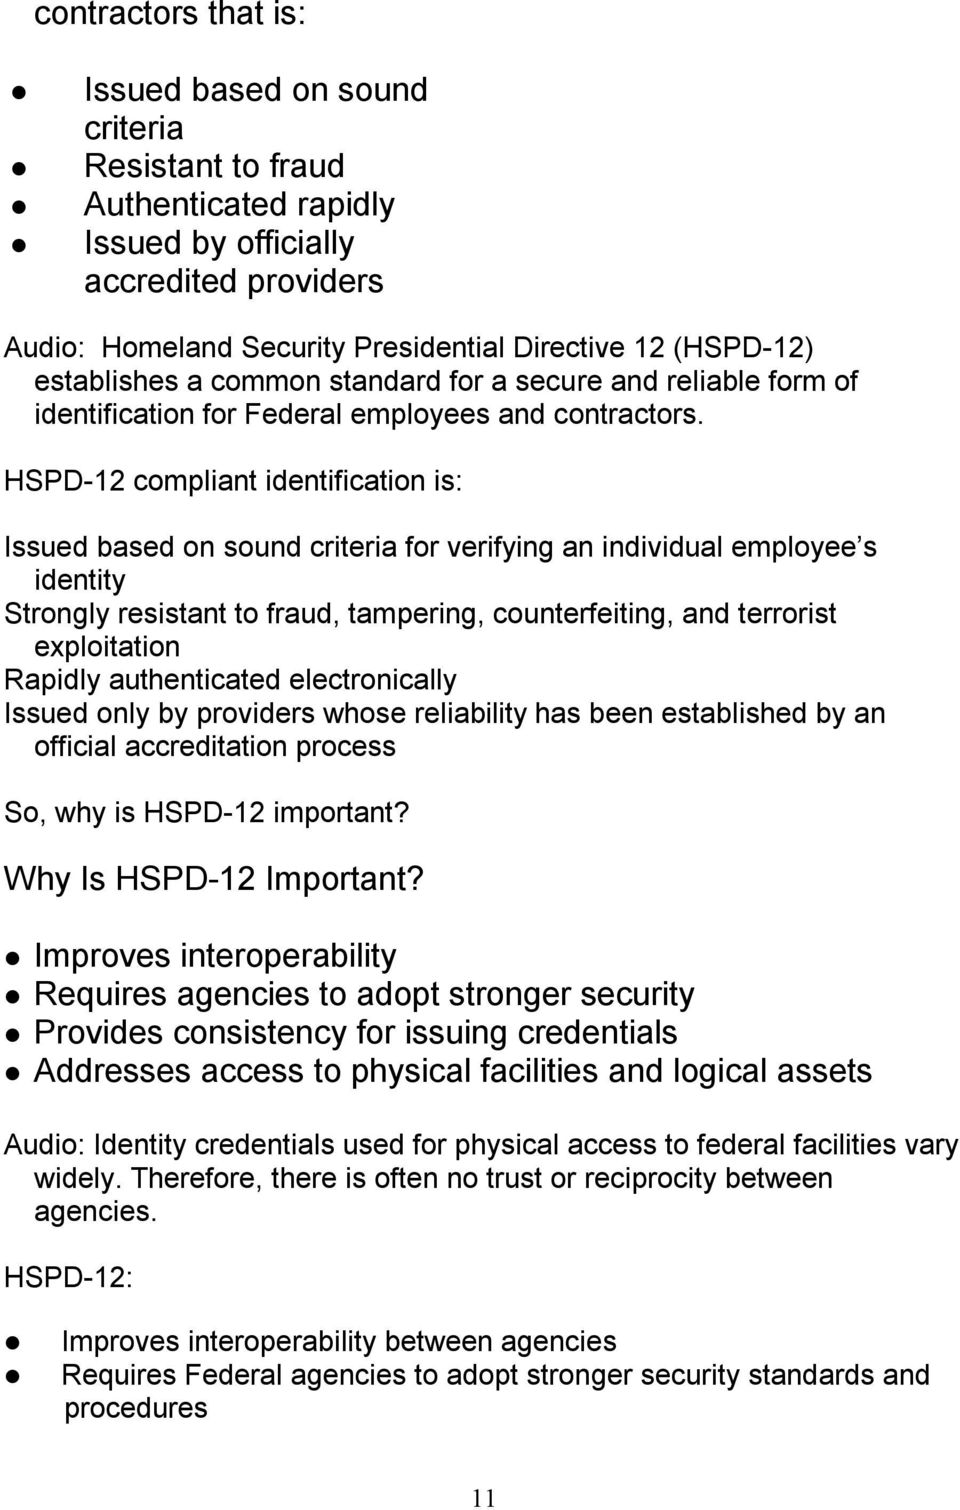 HSPD 12 compliant identification is: Issued based on sound criteria for verifying an individual employee s identity Strongly resistant to fraud, tampering, counterfeiting, and terrorist exploitation